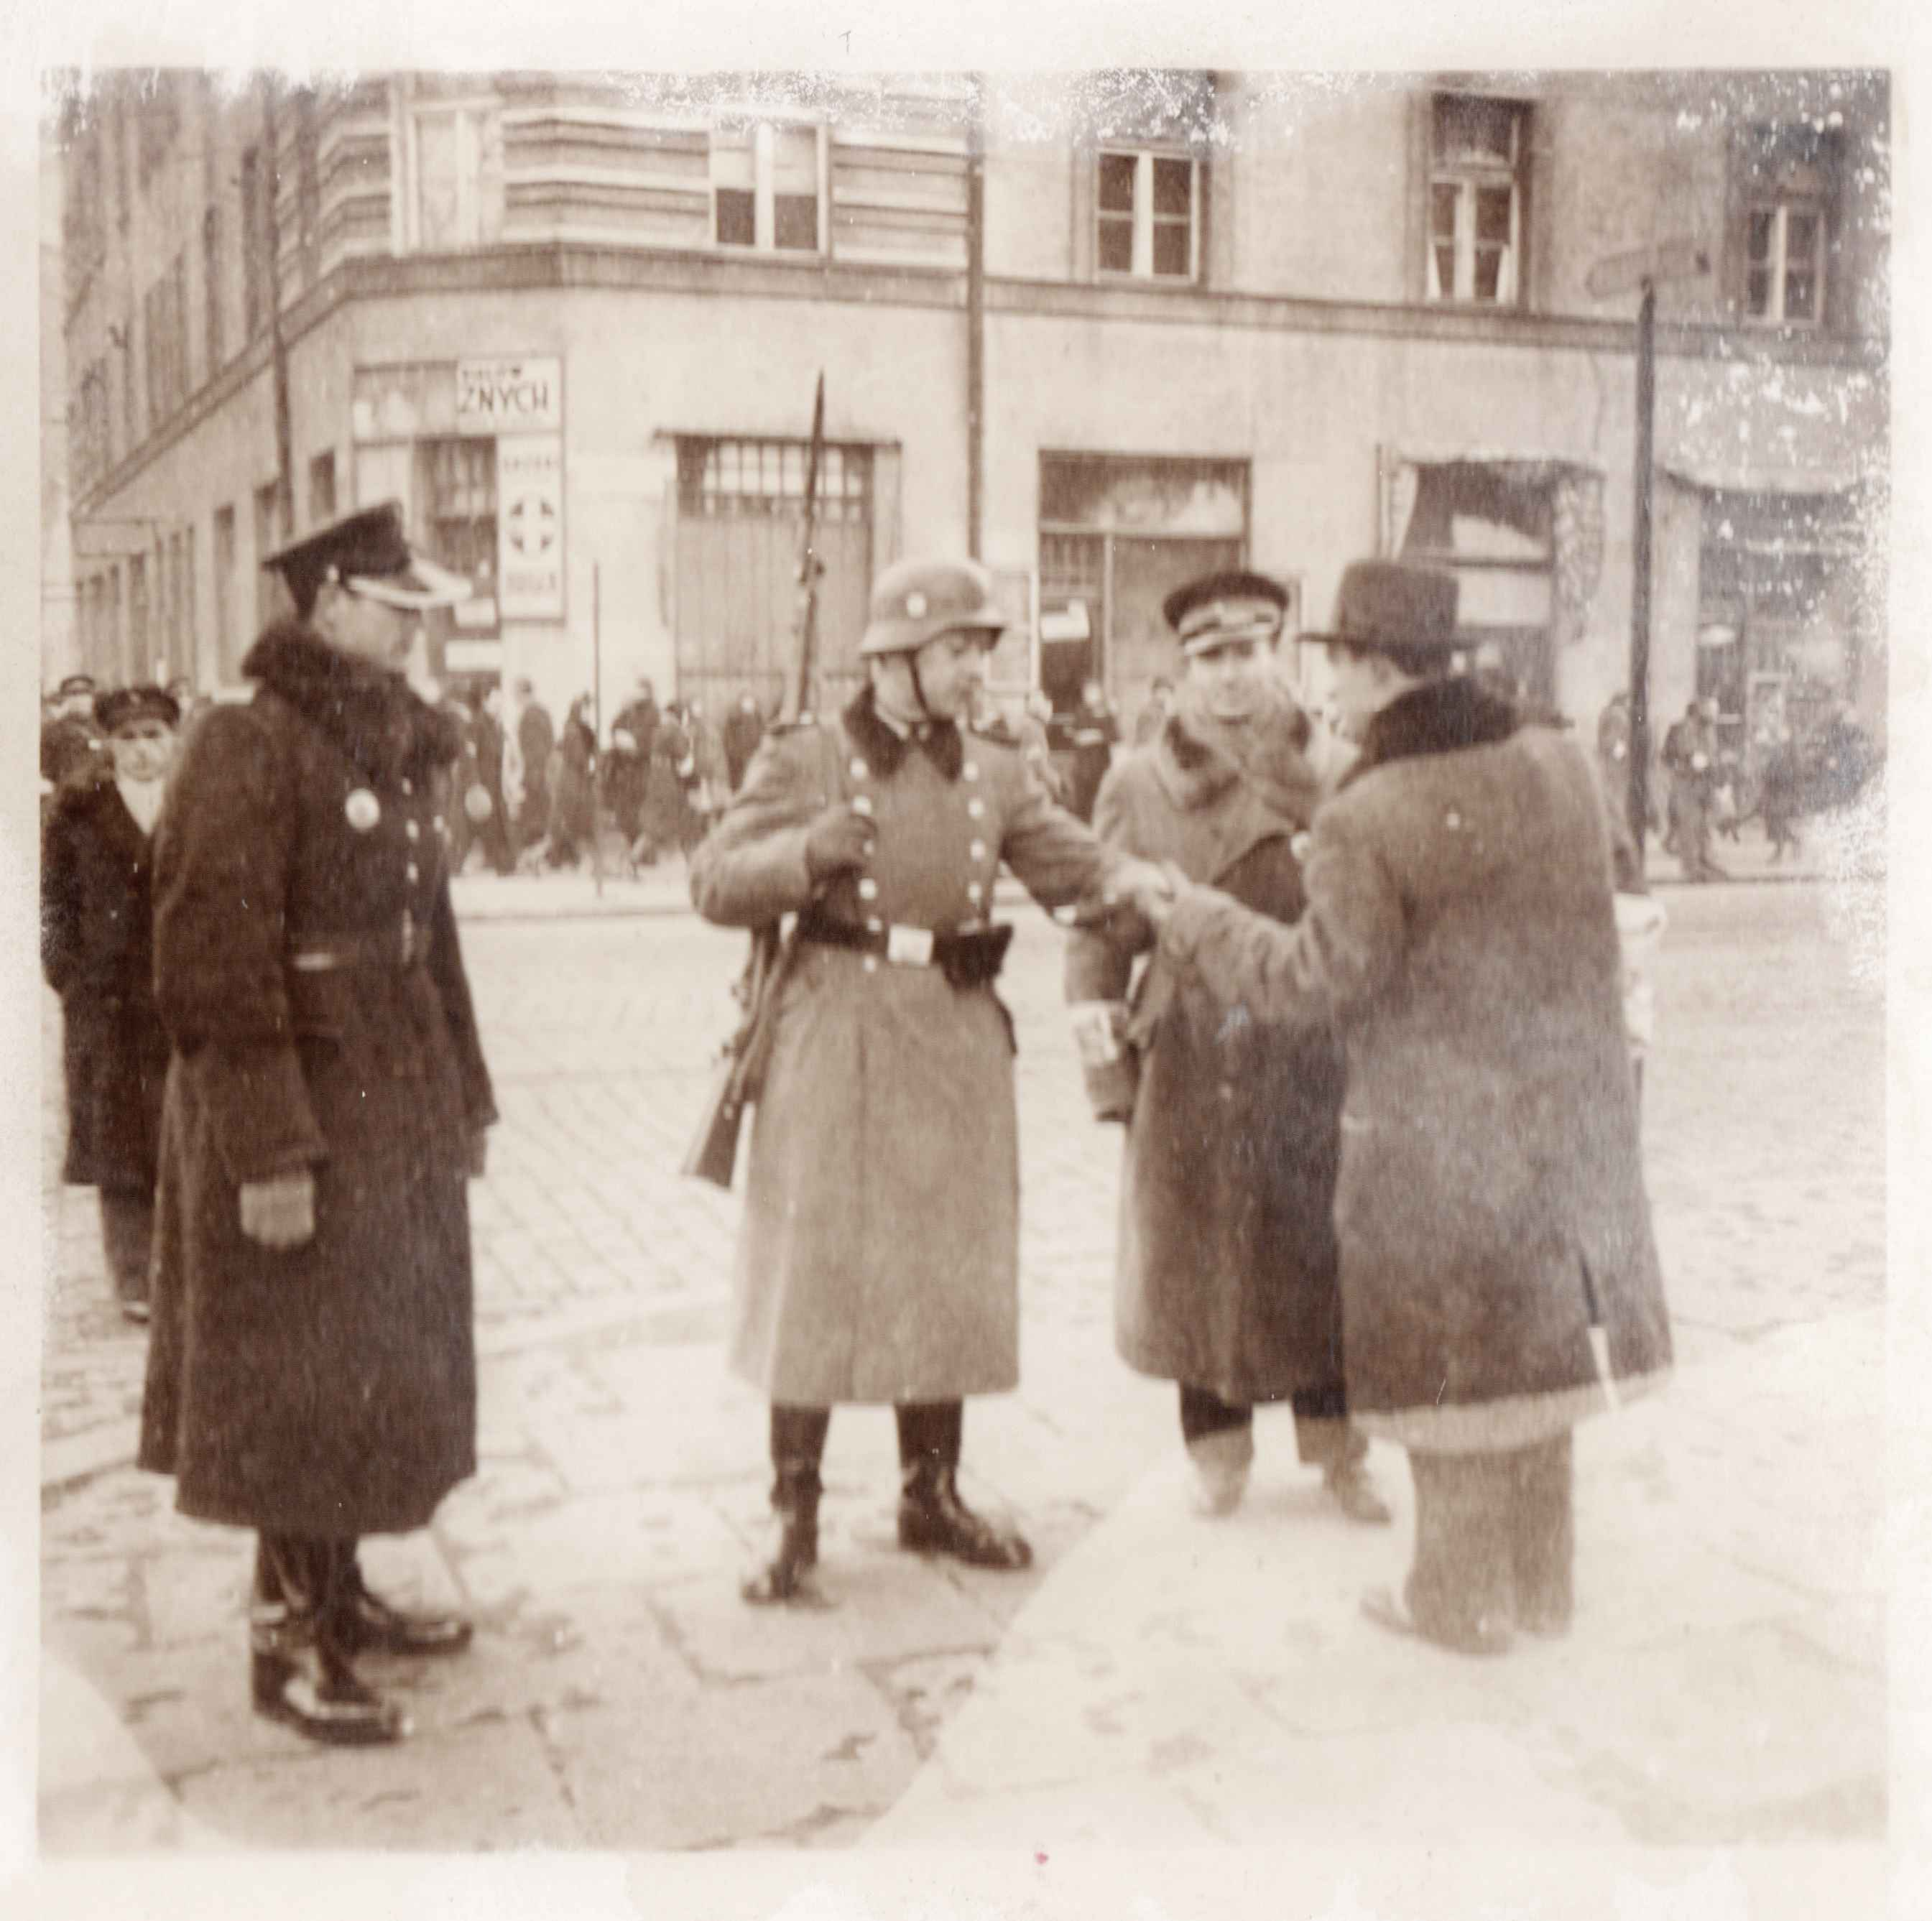 TracesOfWar obtains unique photographs of Warsaw and the Jewish ghetto